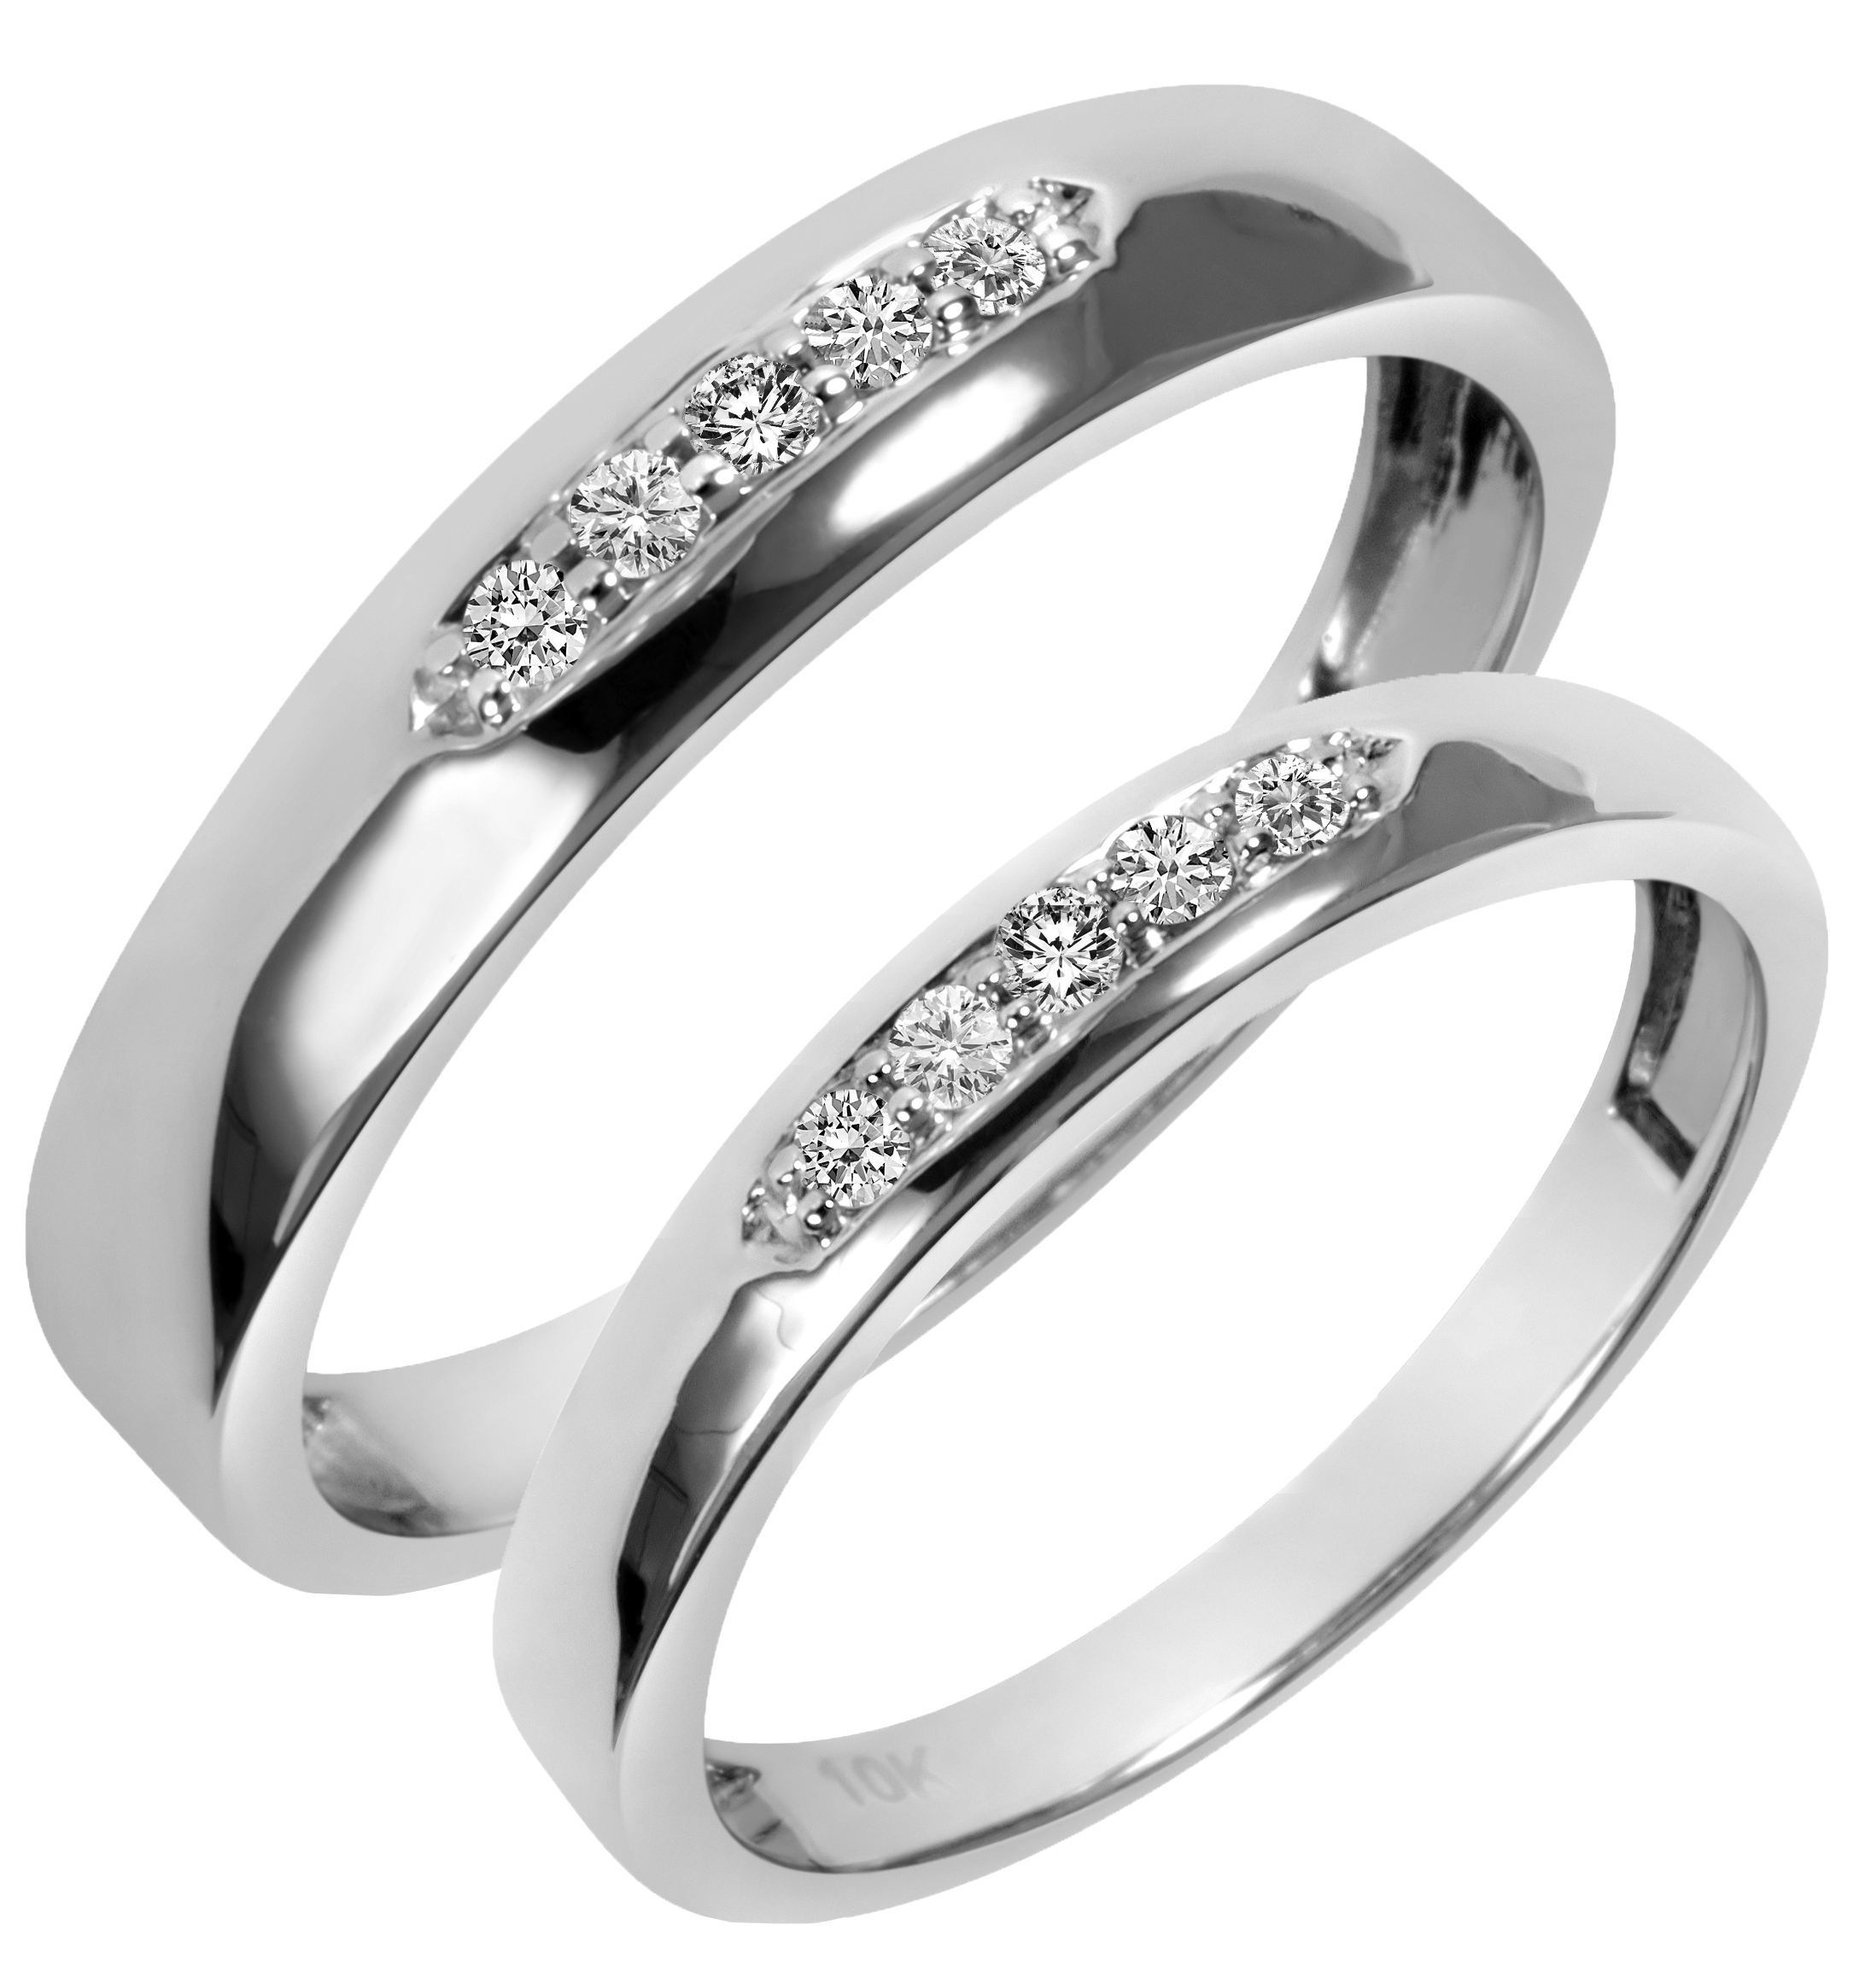 15 carat tw diamond his and hers wedding band set 10k white gold - White Gold Wedding Rings Sets